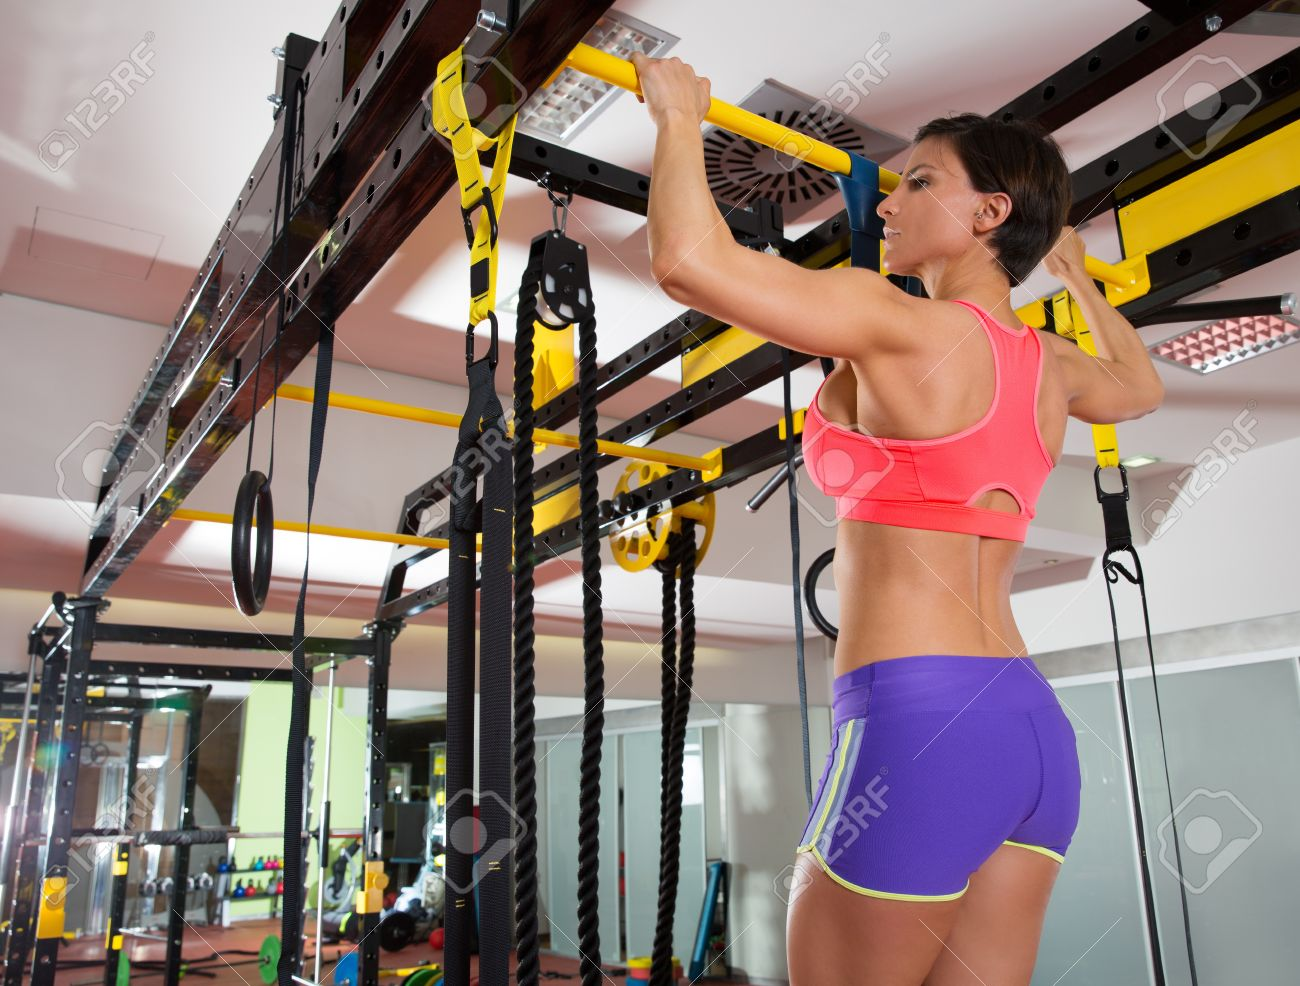 Pull Ups 2 Bars With Trx